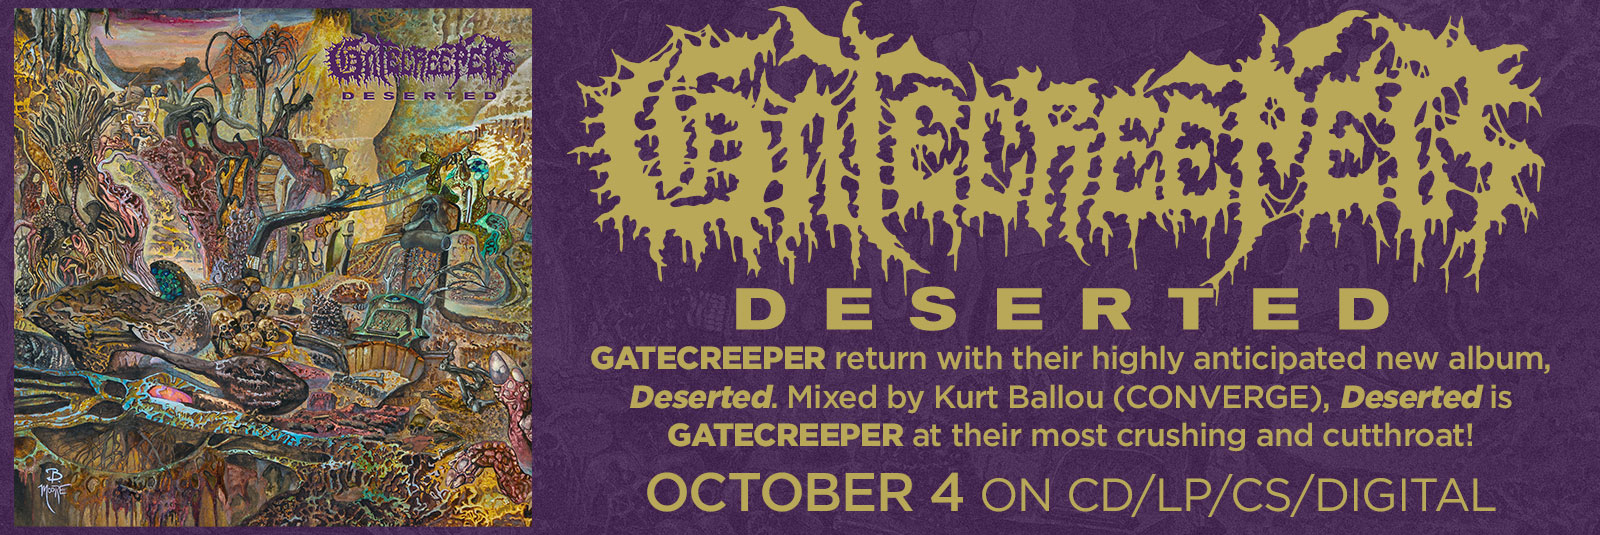 gatecreeper-deserted-death-metal-relapse-september-20